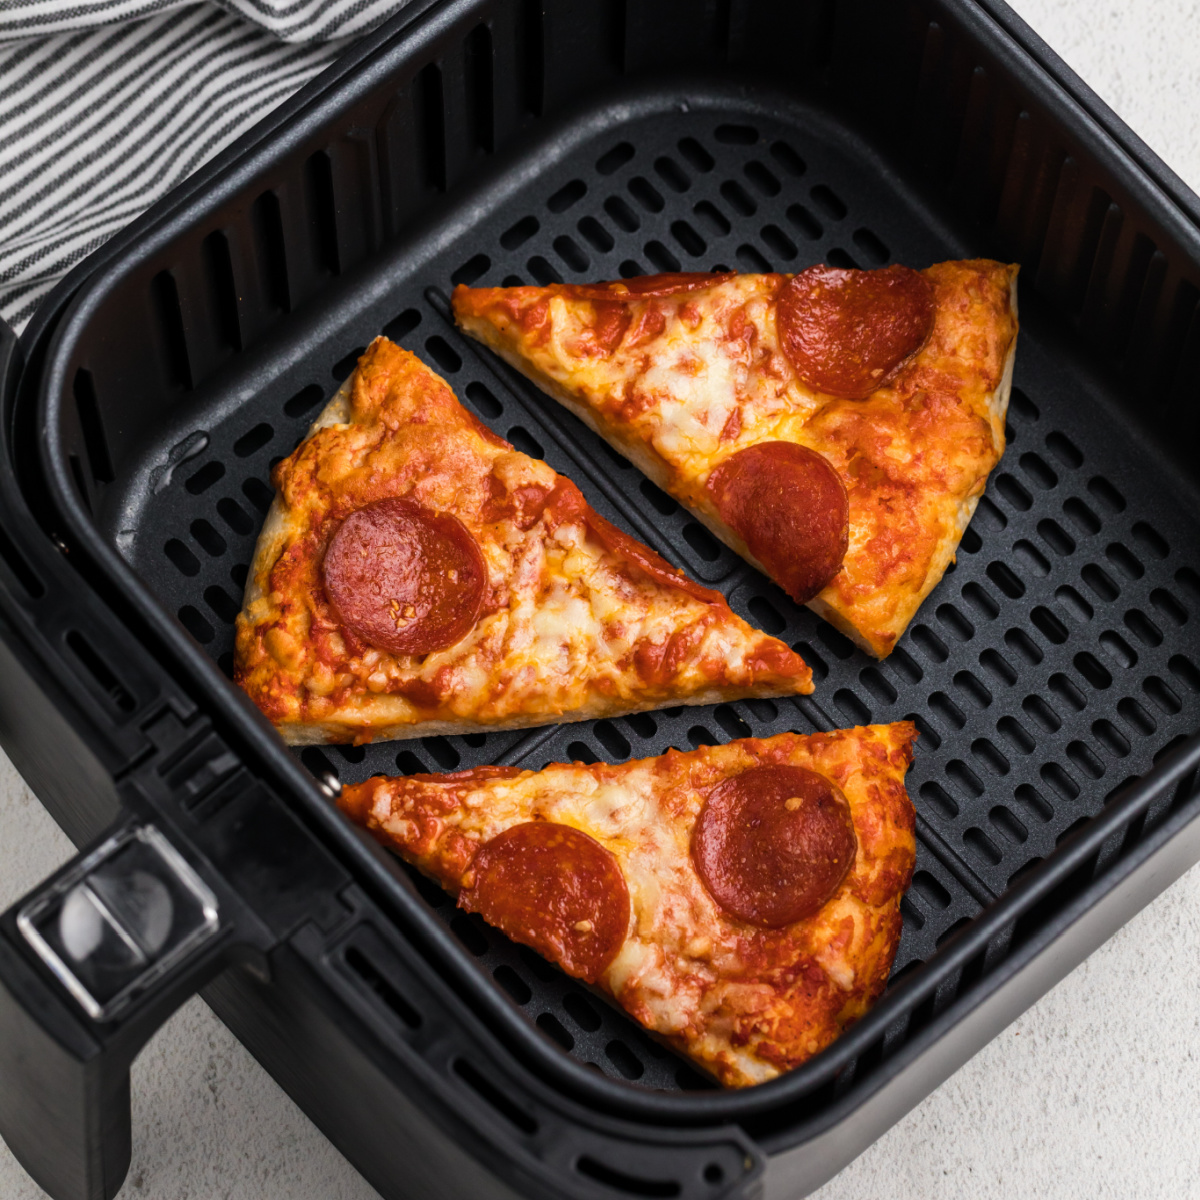 Pizza slices in an air fryer basket.